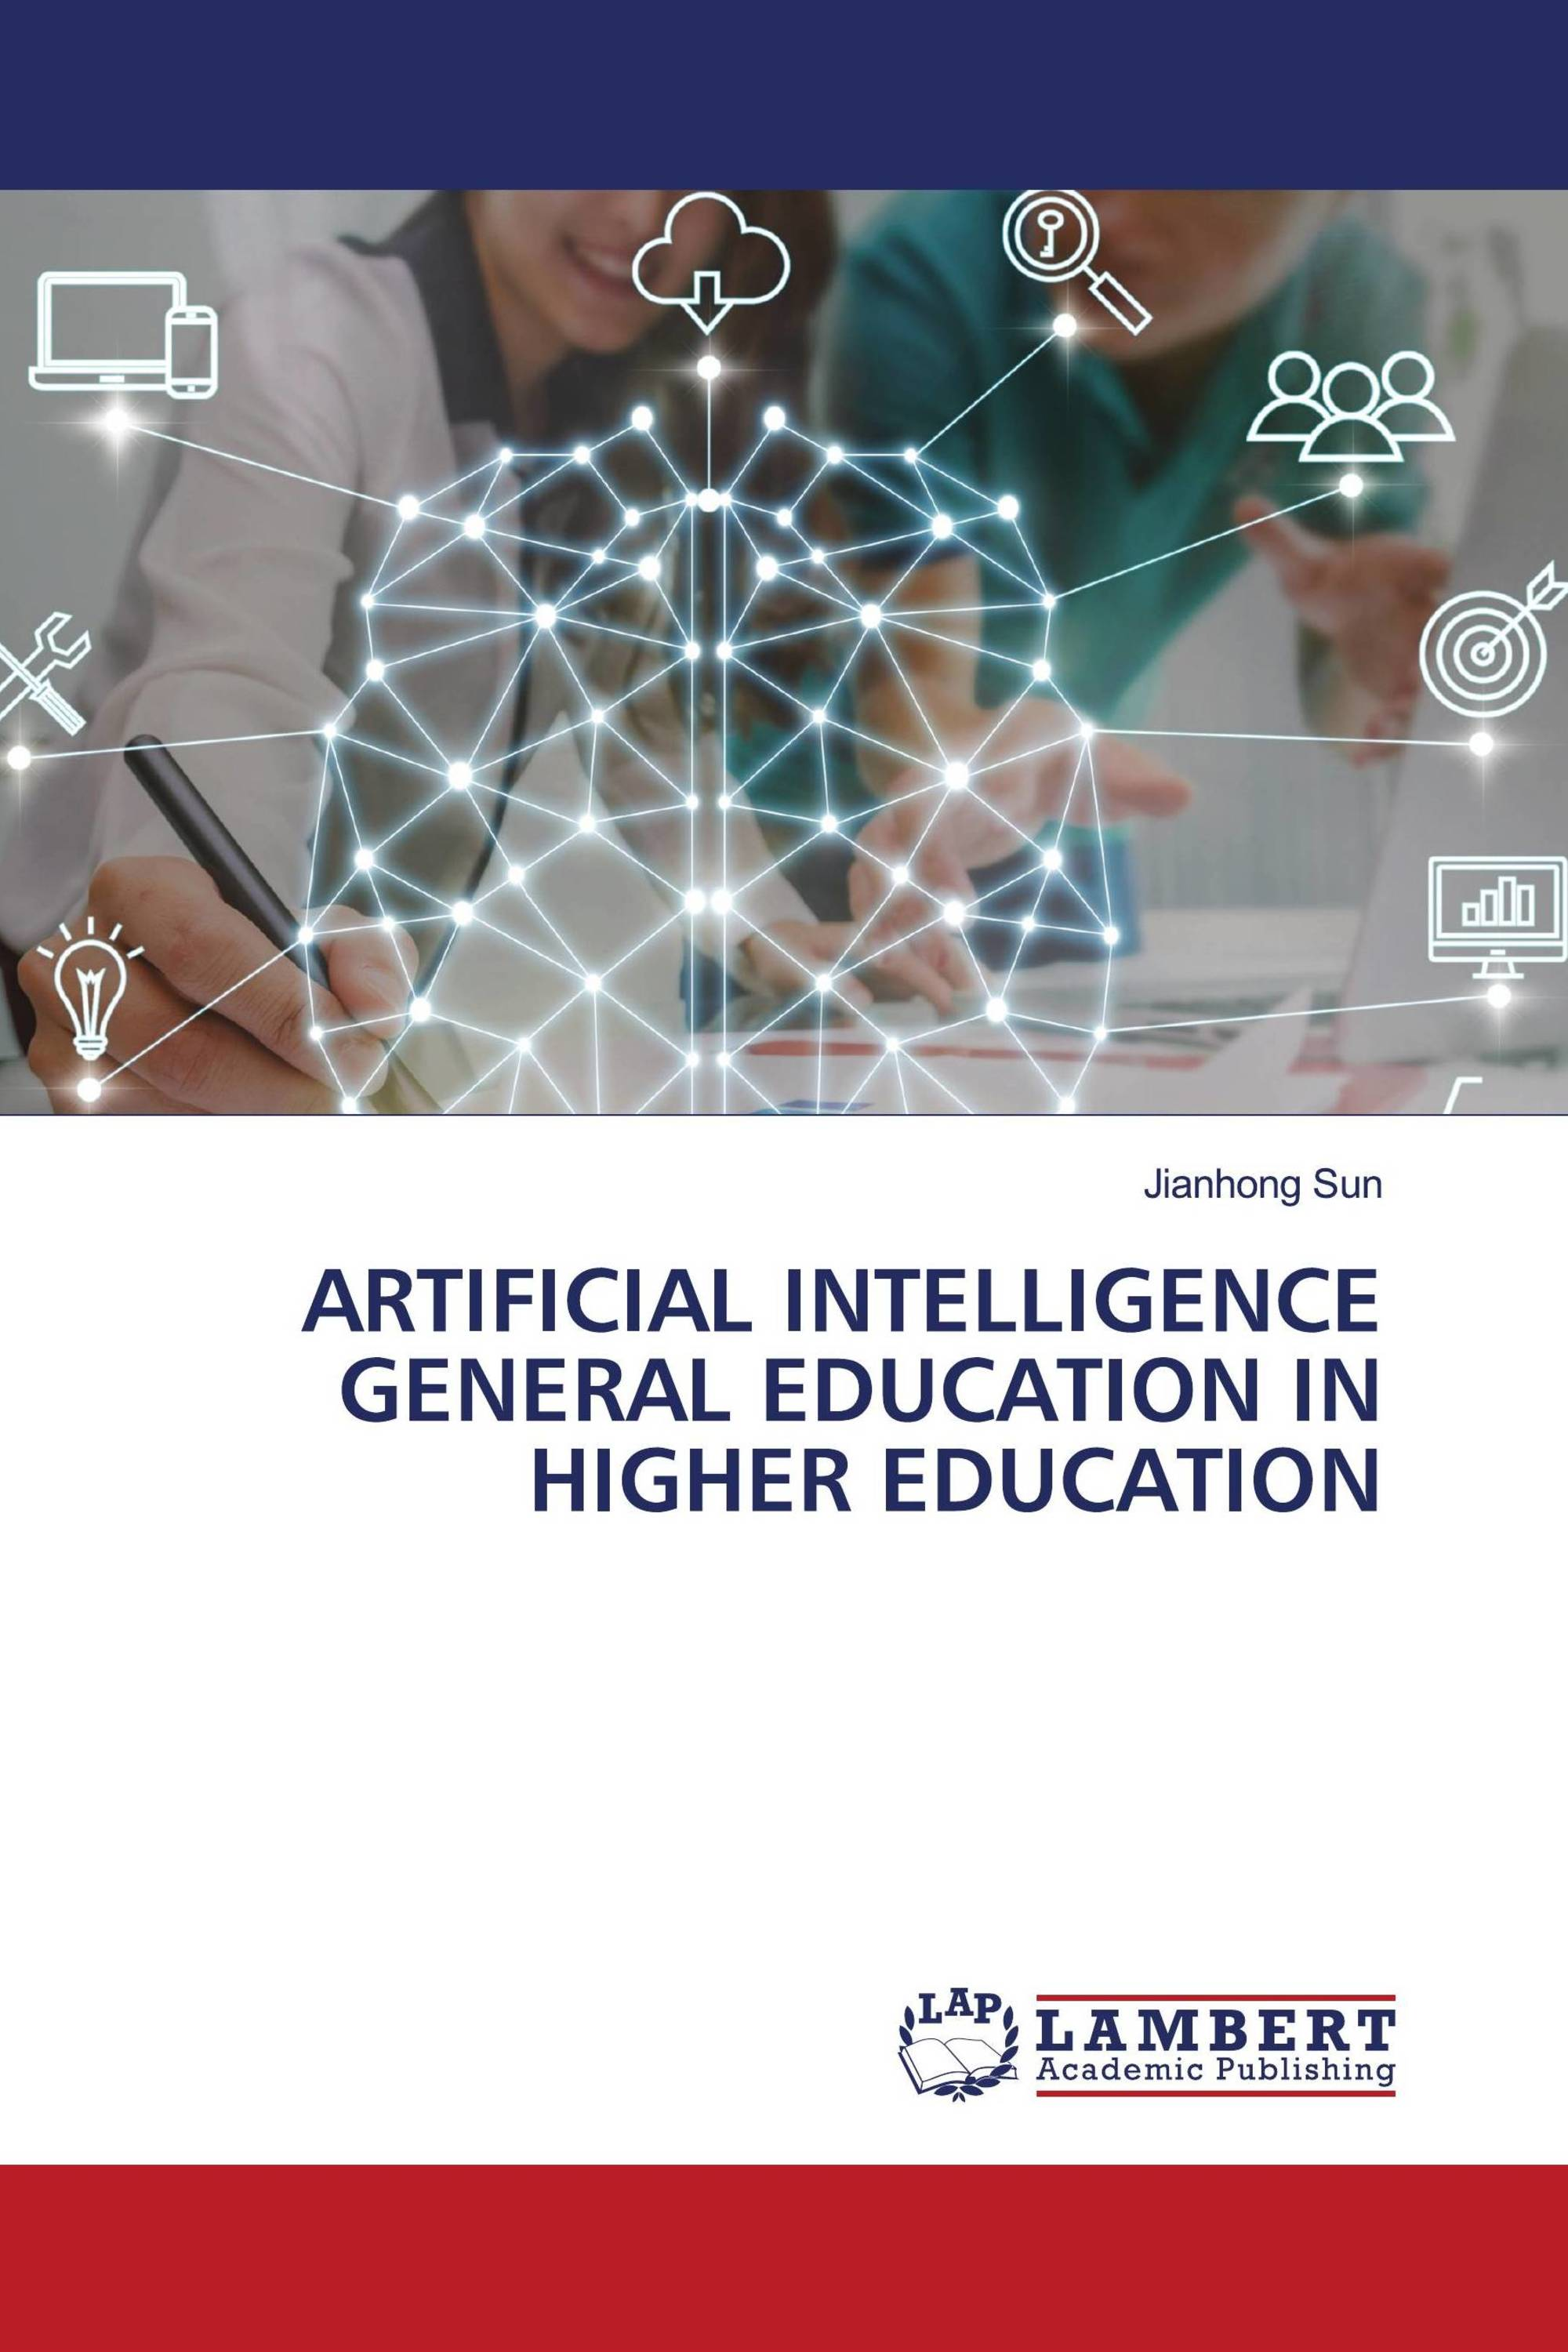 ARTIFICIAL INTELLIGENCE GENERAL EDUCATION IN HIGHER EDUCATION